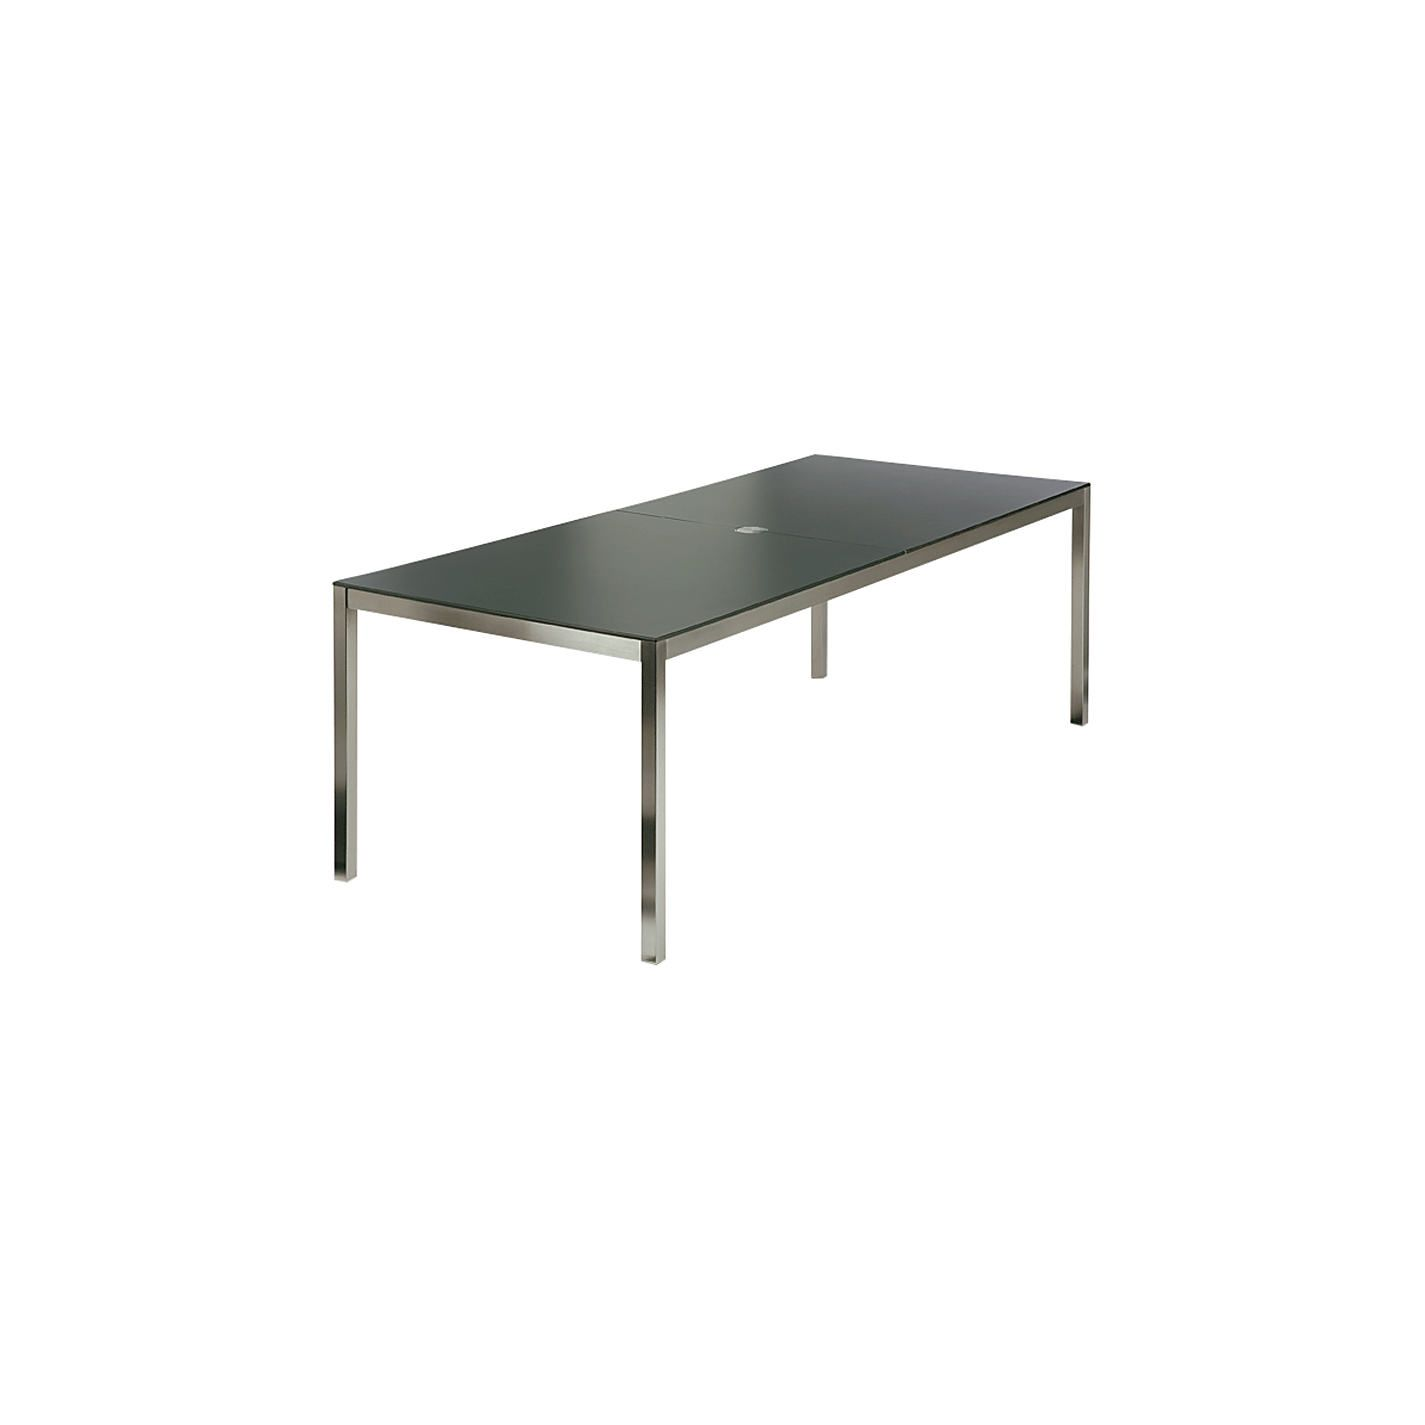 Buy Barlow Tyrie Equinox Rectangular 10 Seater Outdoor Dining Table ...